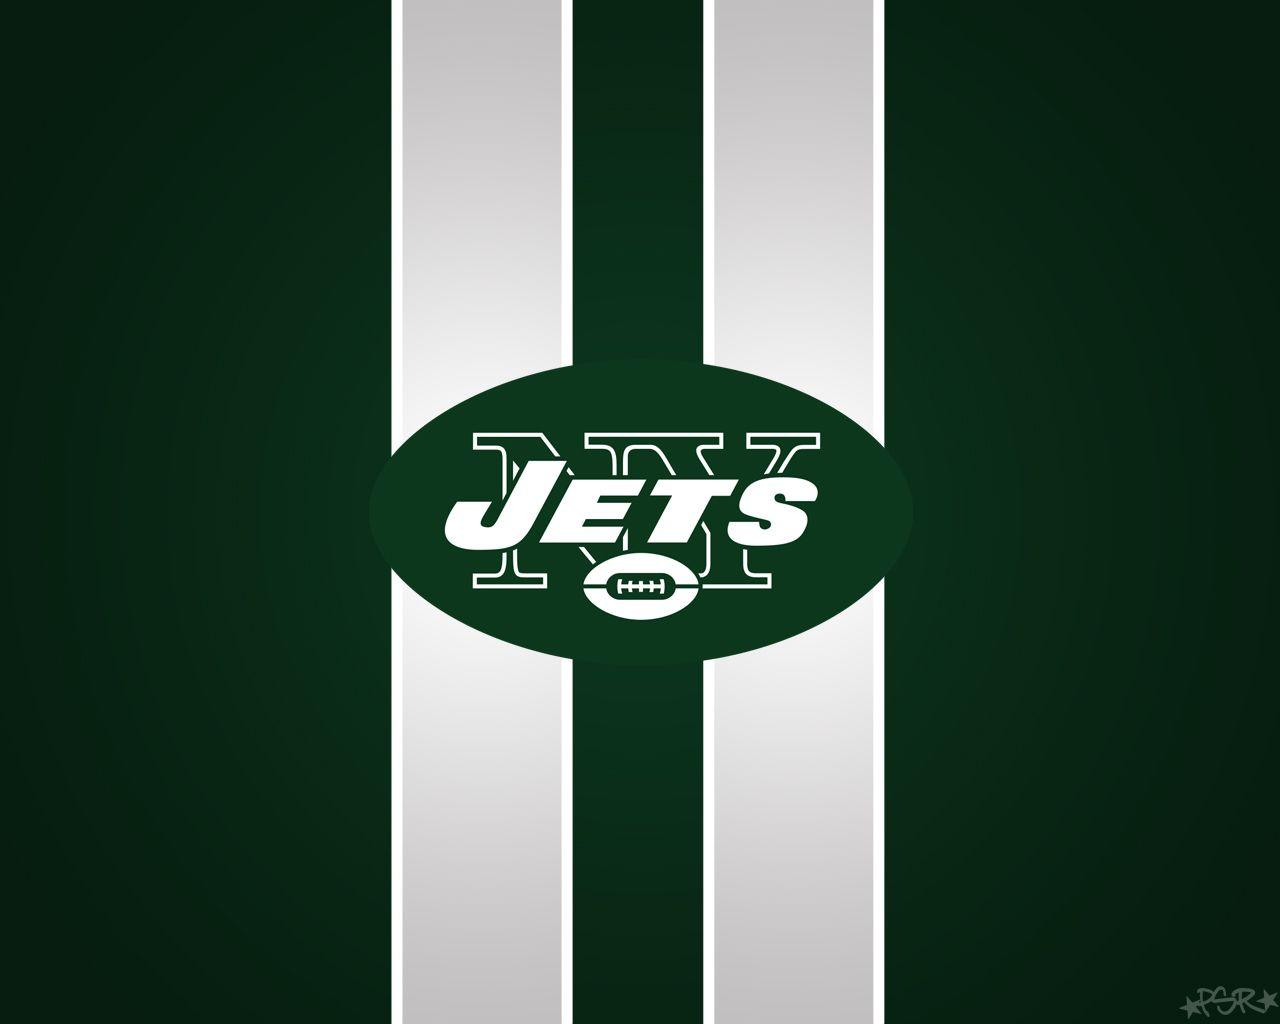 Football New York Jets Wallpapers